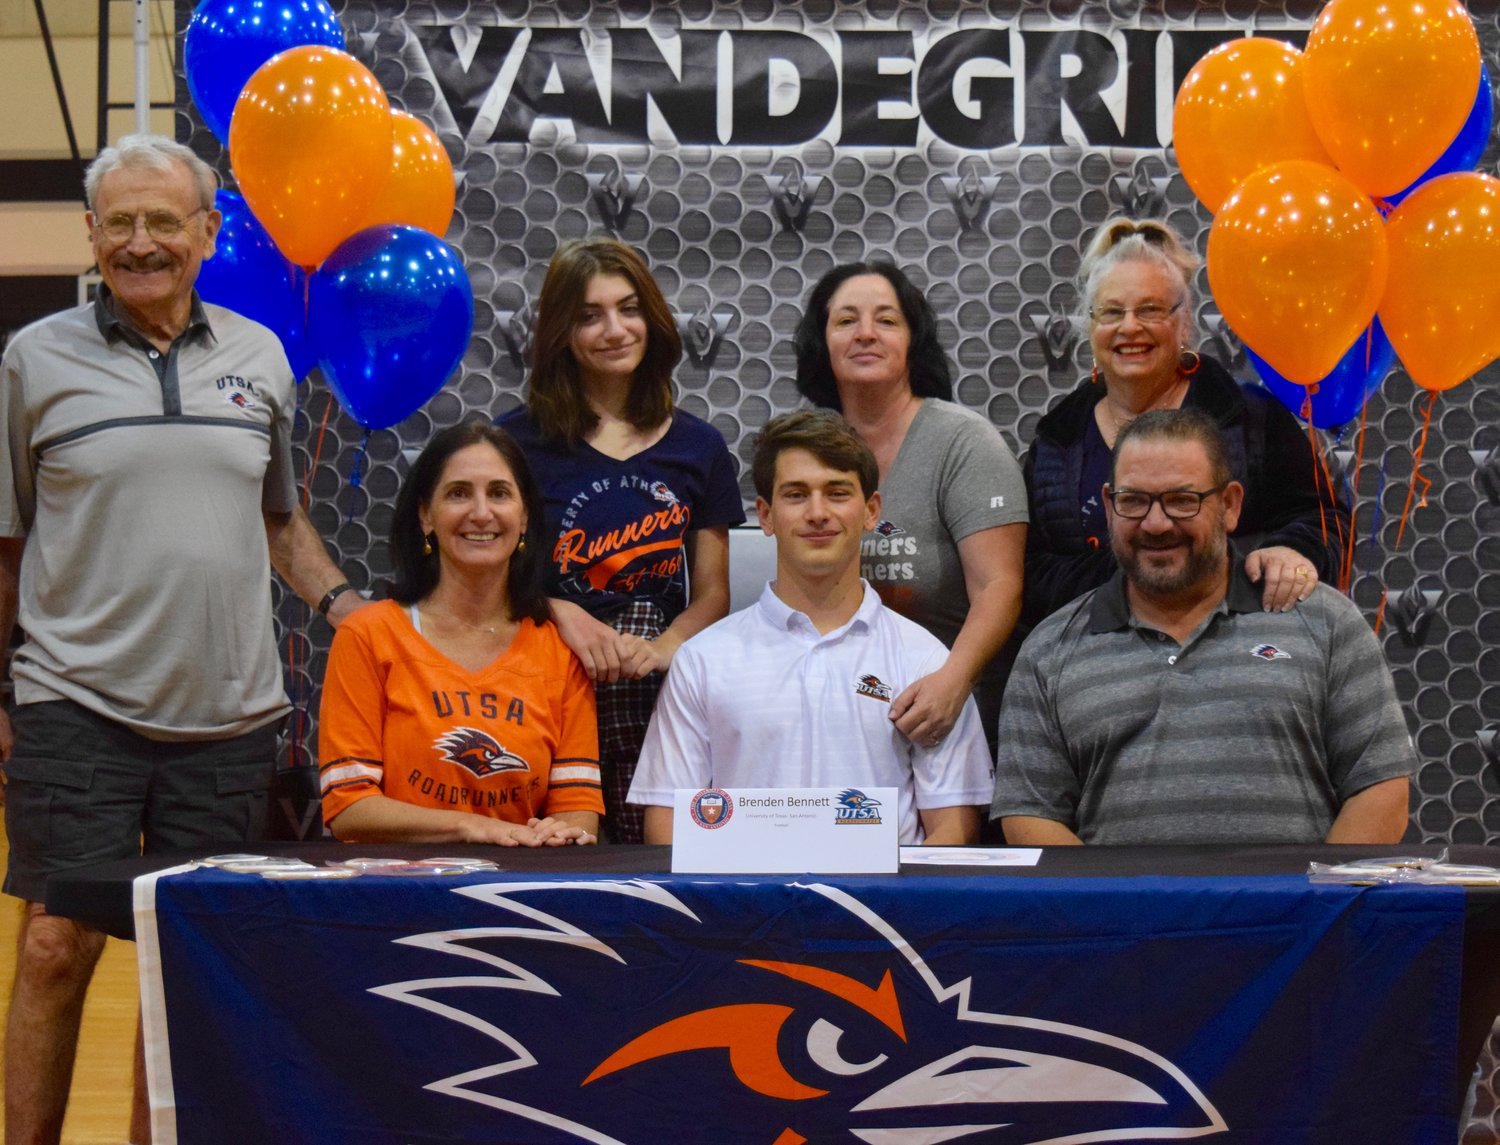 Brendan Bennett signed on to play football at UTSA at a signing day celebration Friday morning at Vandegrift High School.